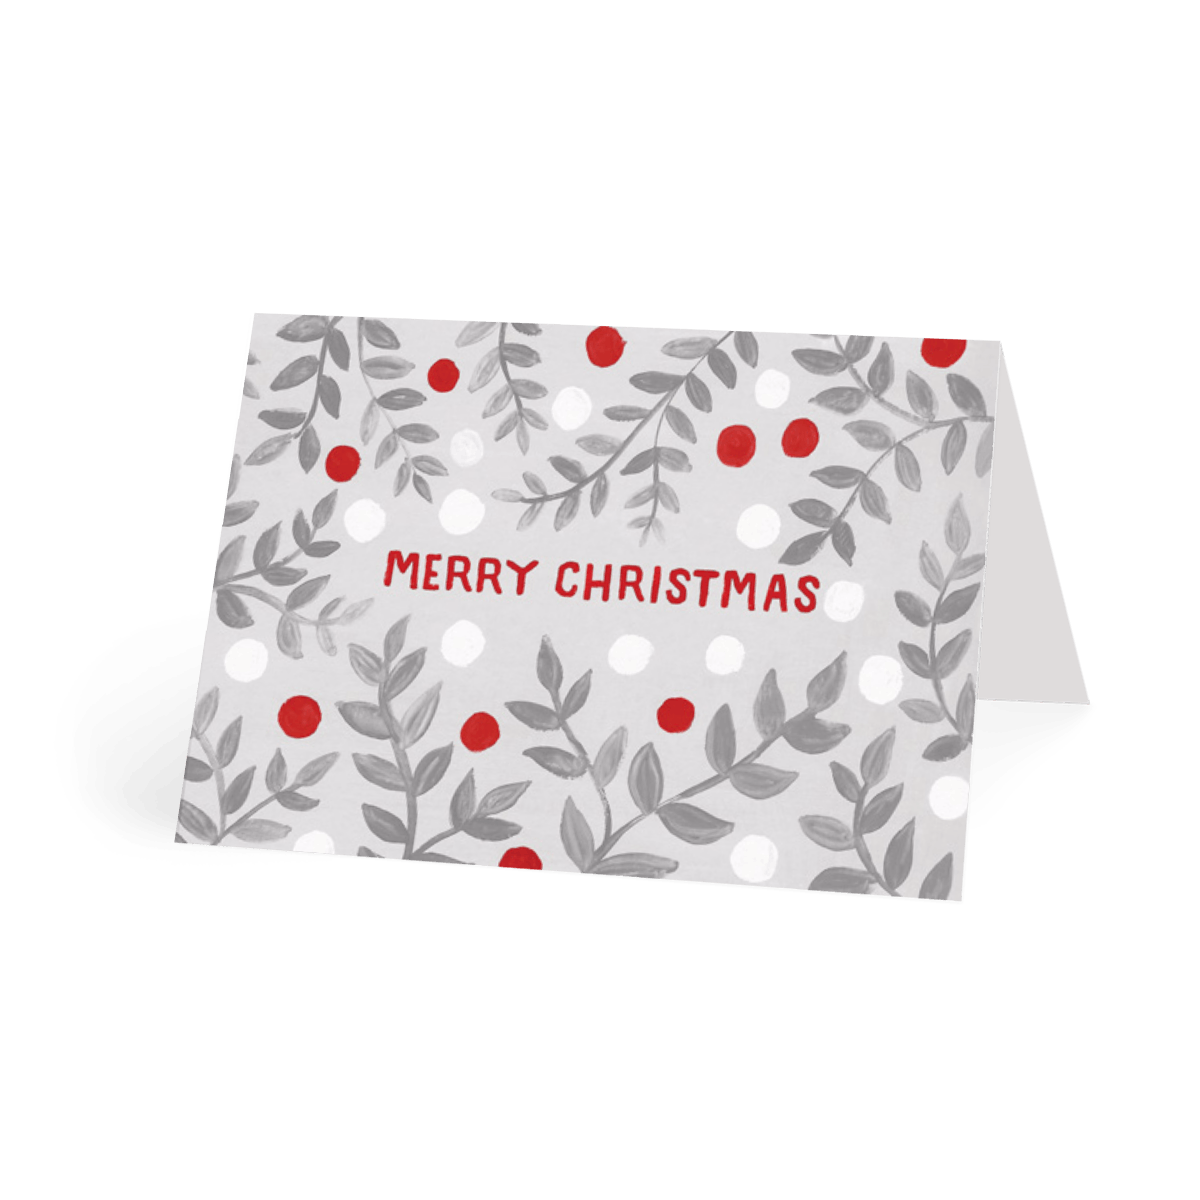 Https%3a%2f%2fwww.papier.com%2fproduct image%2f30161%2f14%2fchristmas red berries 7607 front 1509020135.png?ixlib=rb 1.1